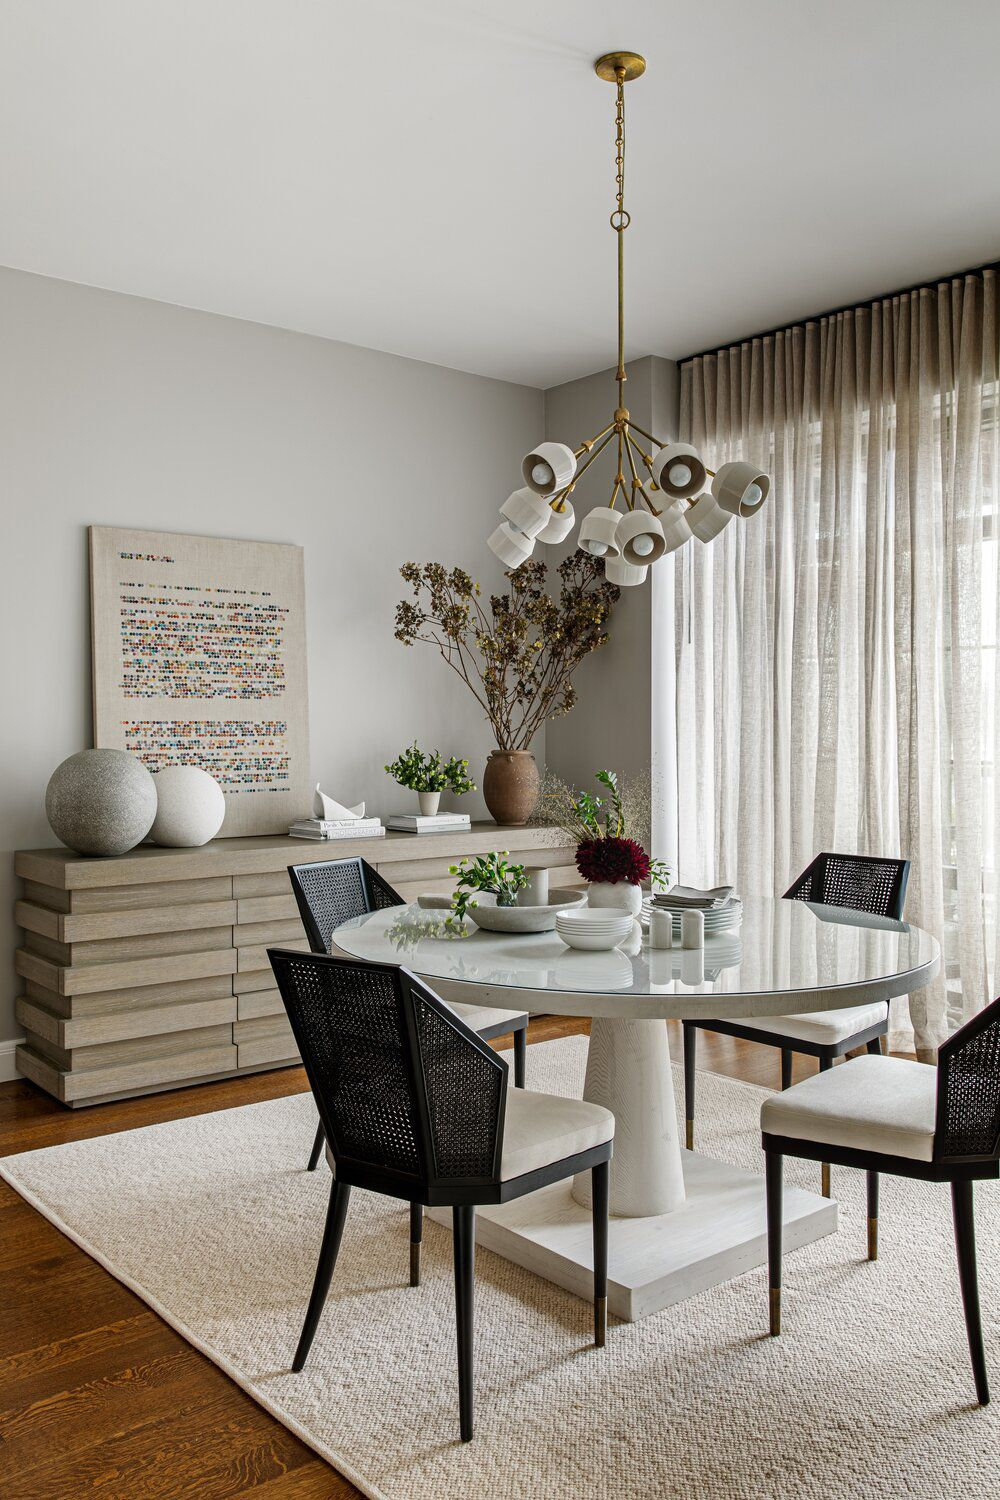 15 Soothing Paint Colors To Create A Calming Space In 2020 Dining Room Colors Dining Room Paint Dining Room Design #soothing #colors #for #living #room